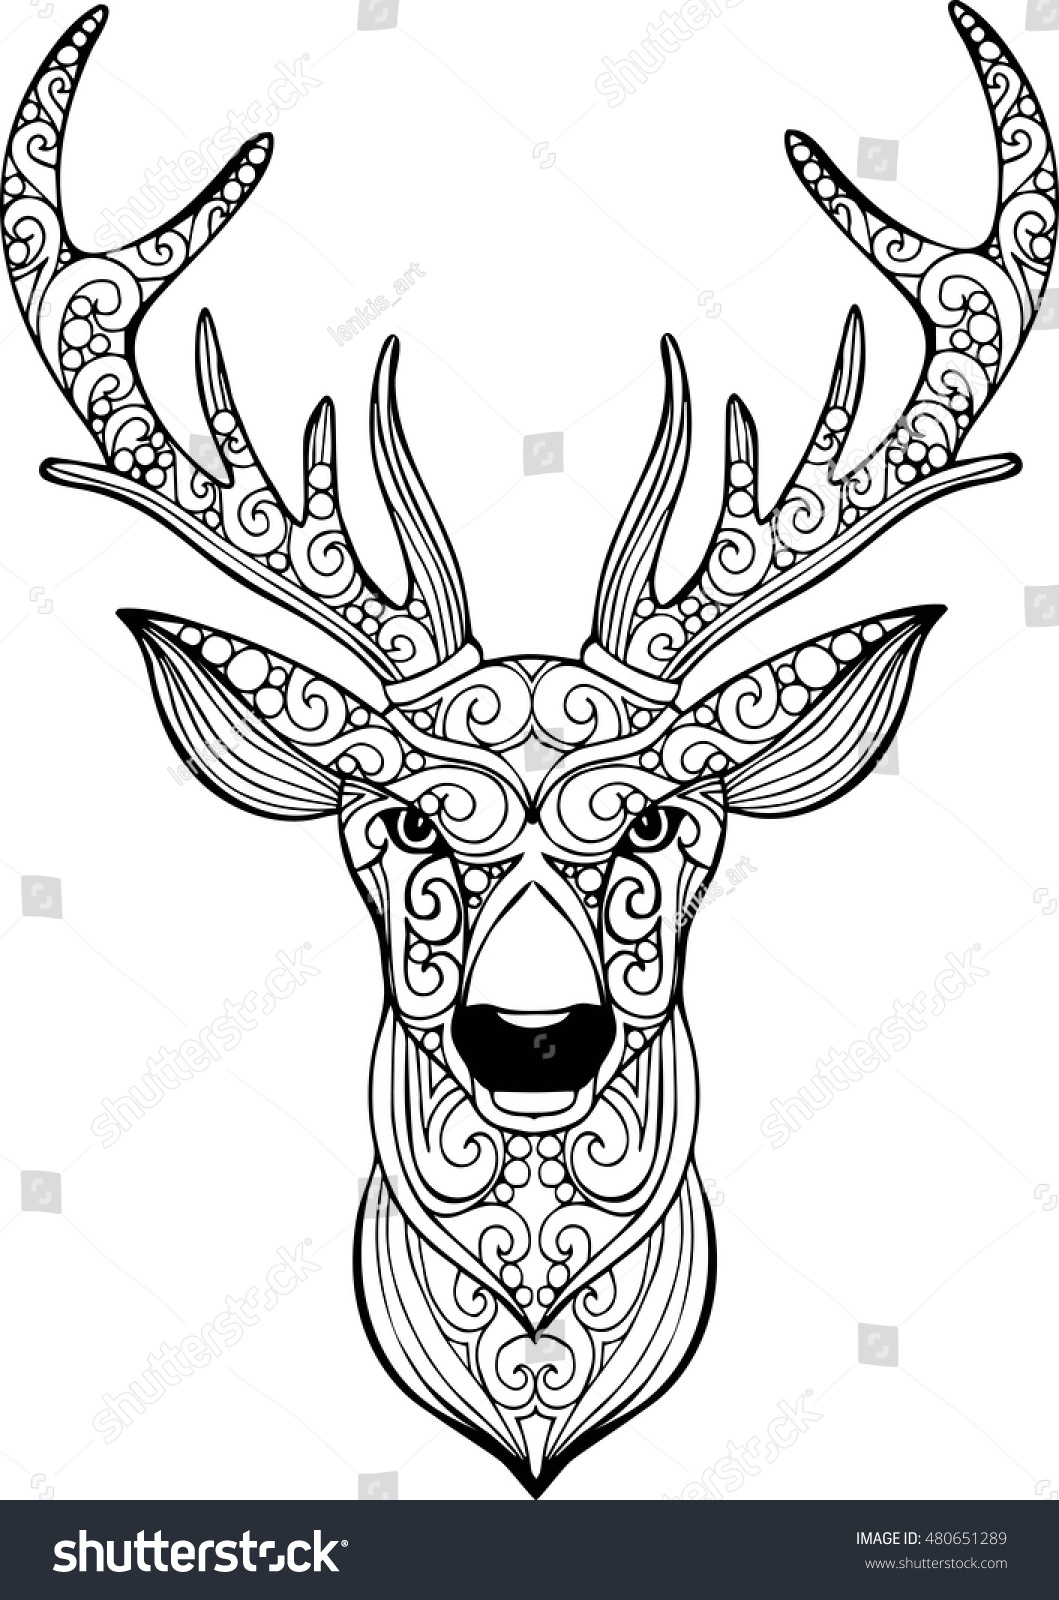 Hand Drawn Doodle Ornate Deer Illustration Stock Vector